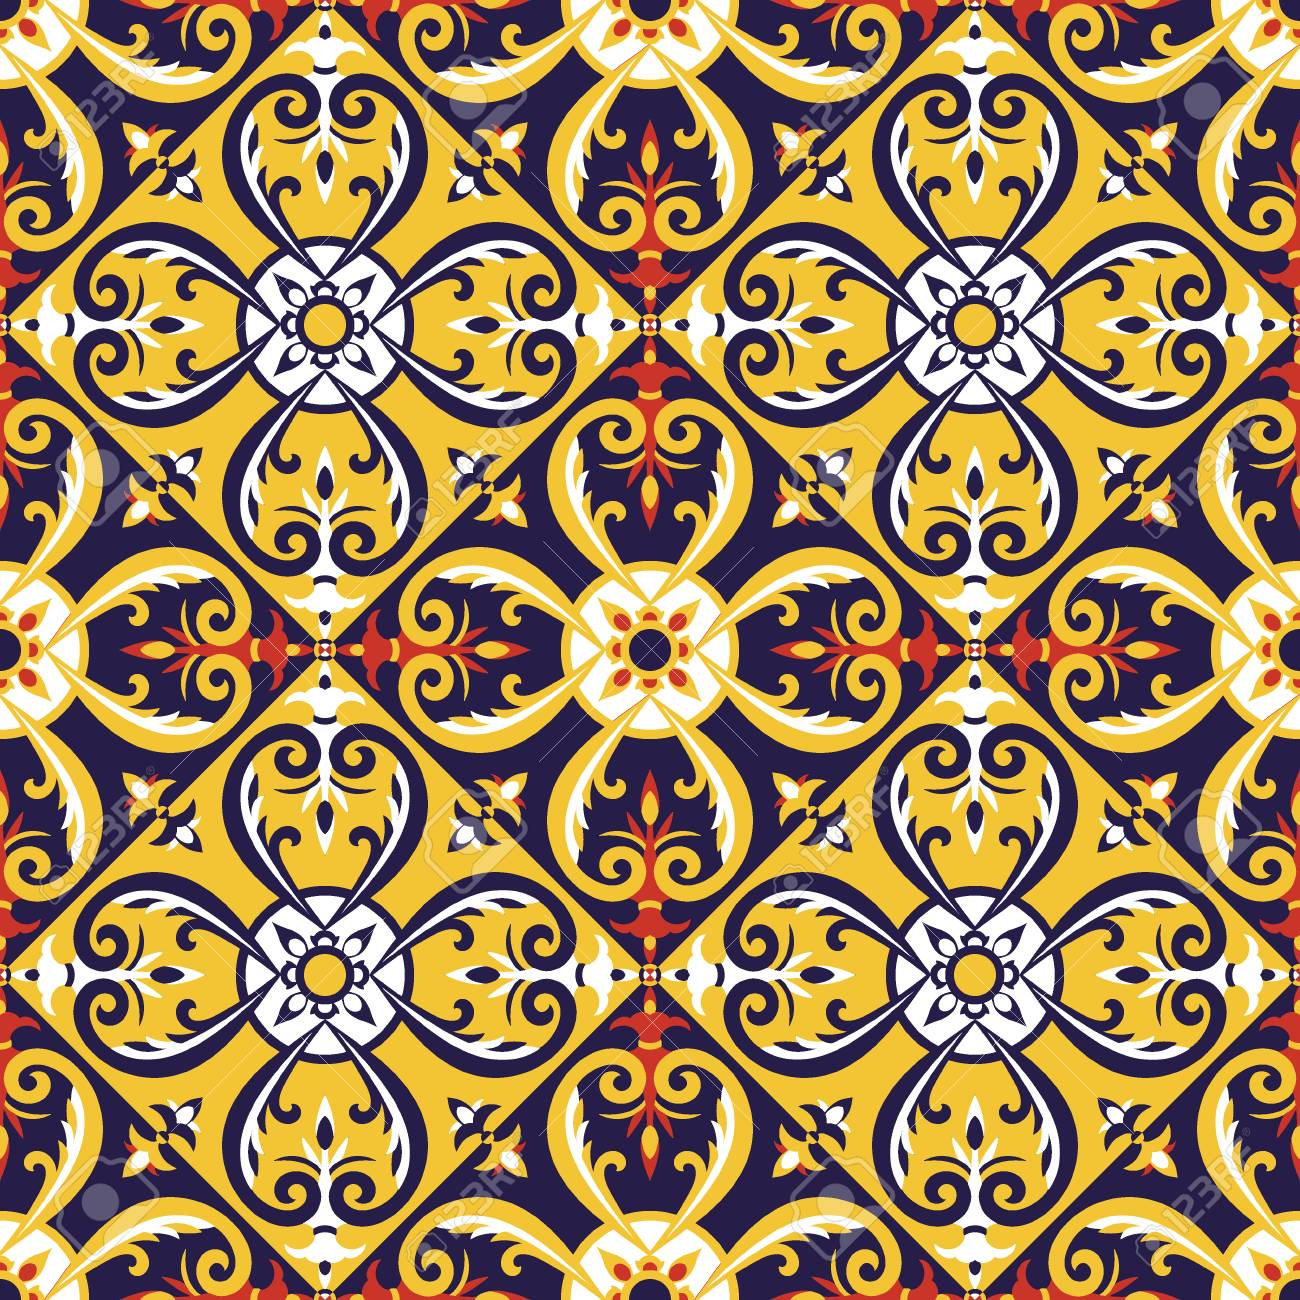 Italian Tiles Pattern Vector With Blue, Red, Yellow And White ...